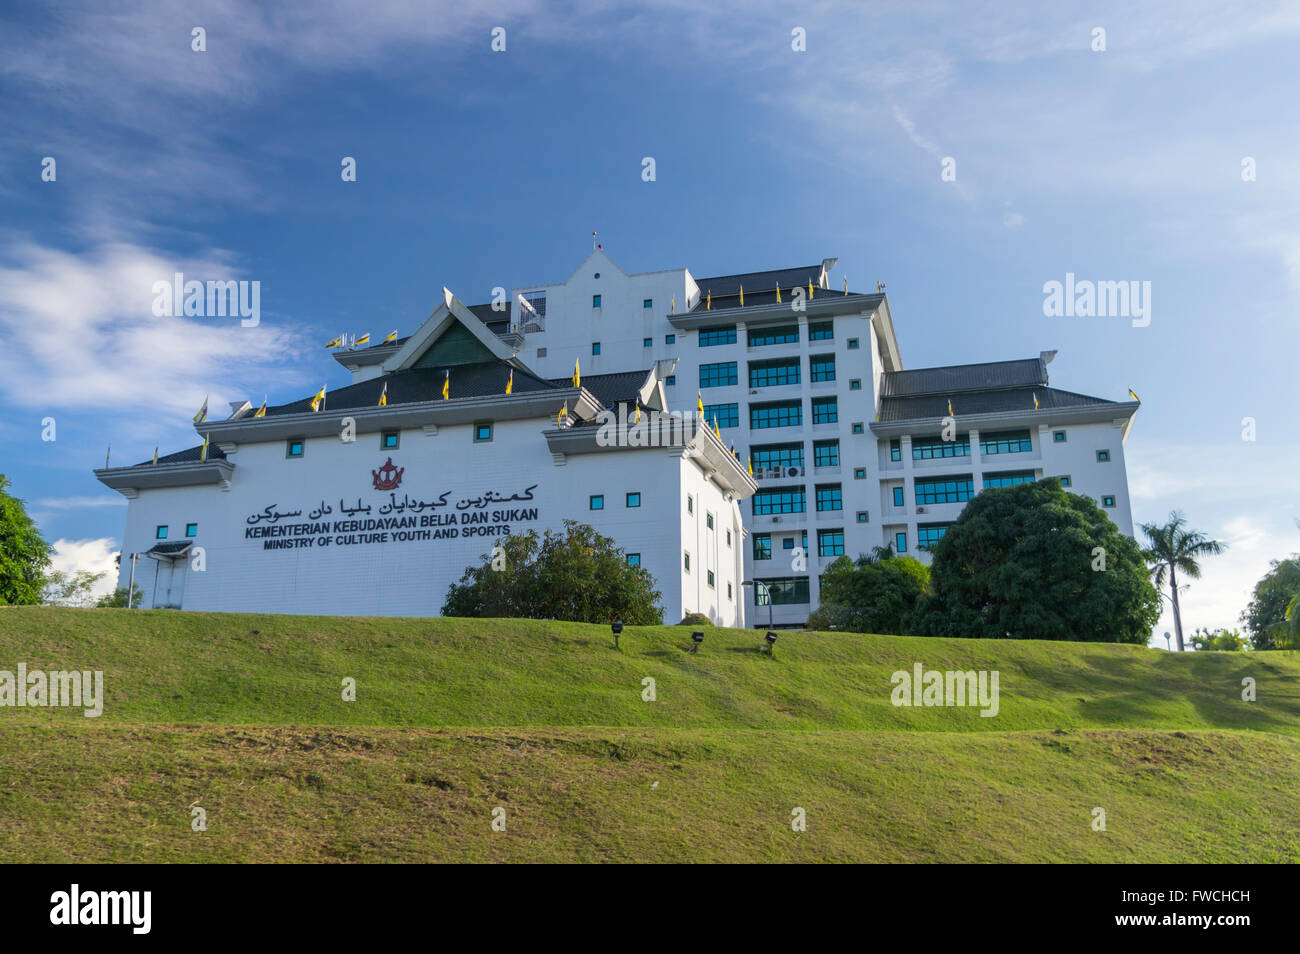 Main building of the Ministry of Culture, Youth and Sports of Brunei Darussalam. Contemporary local architecture. - Stock Image